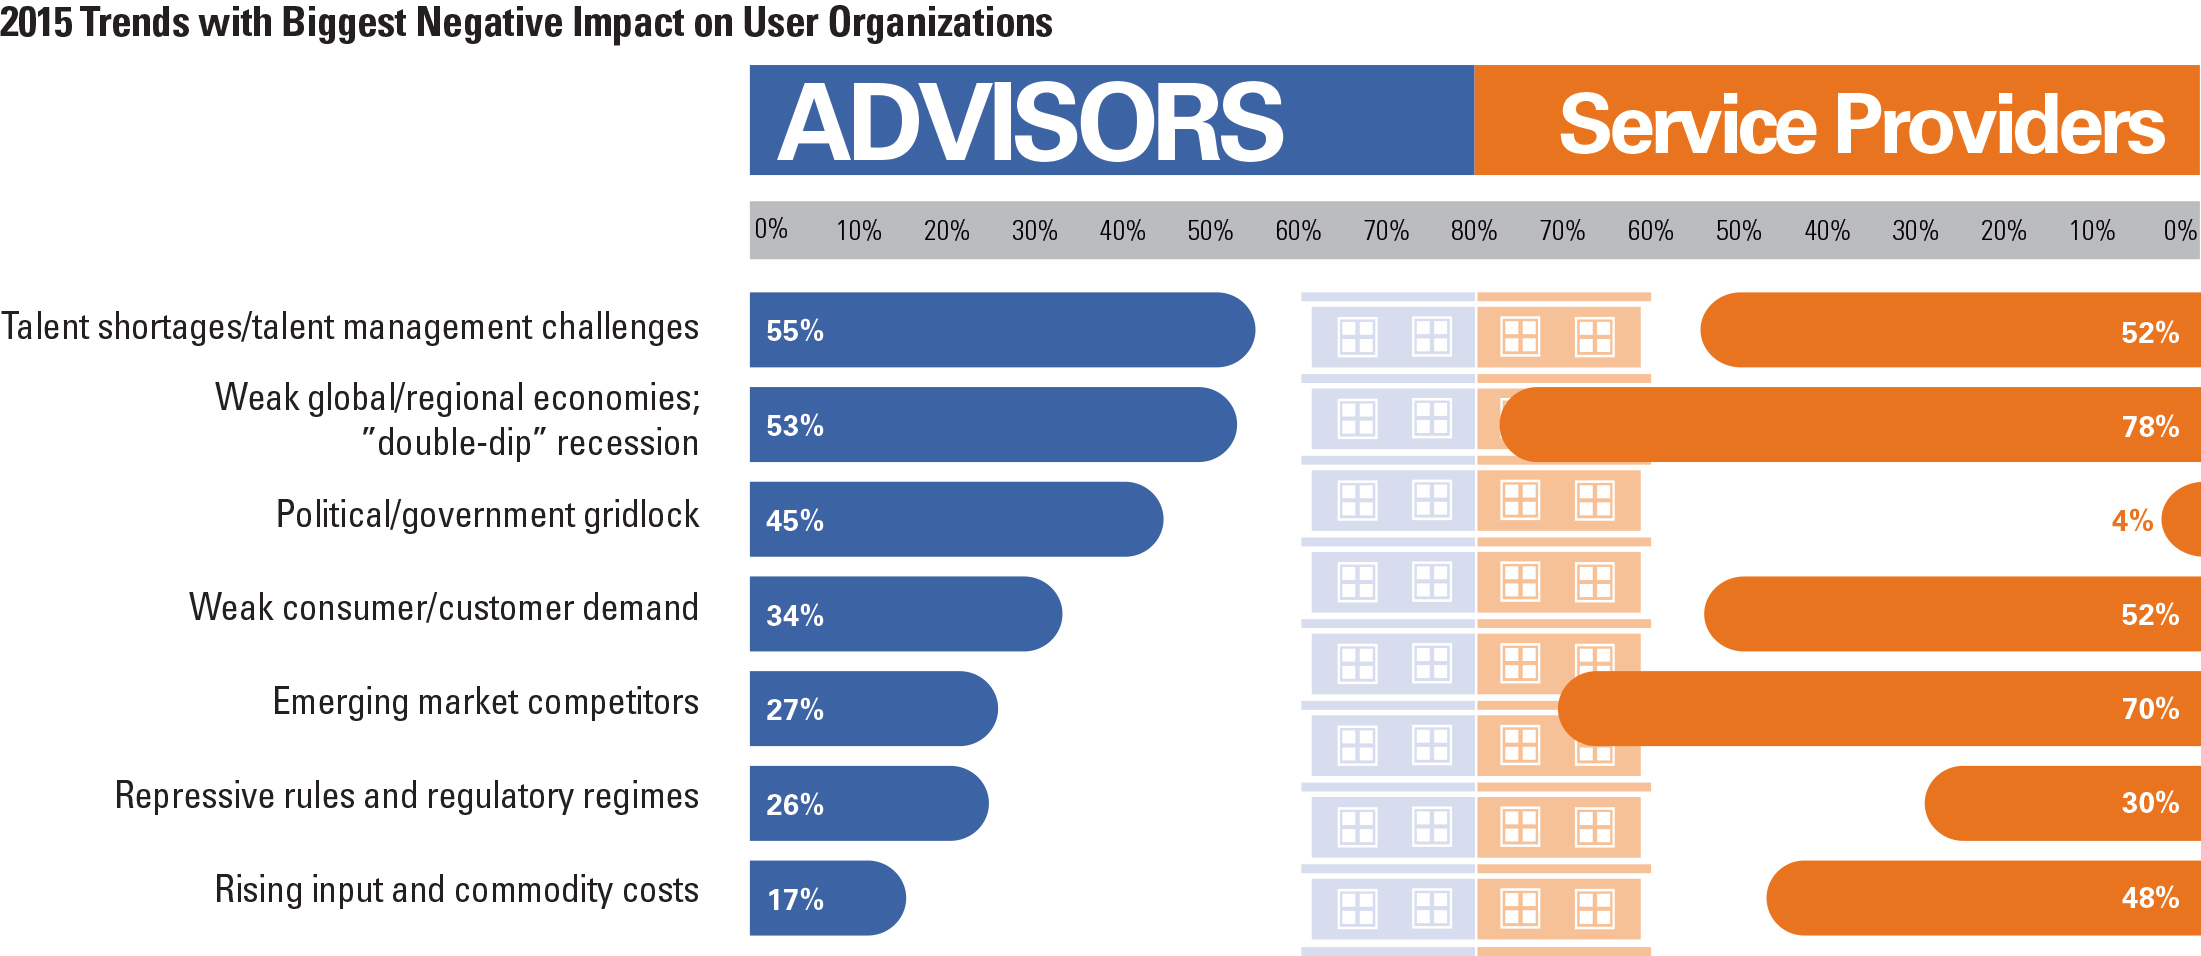 2015 Trends with Biggest Negative Impact on User Organizations